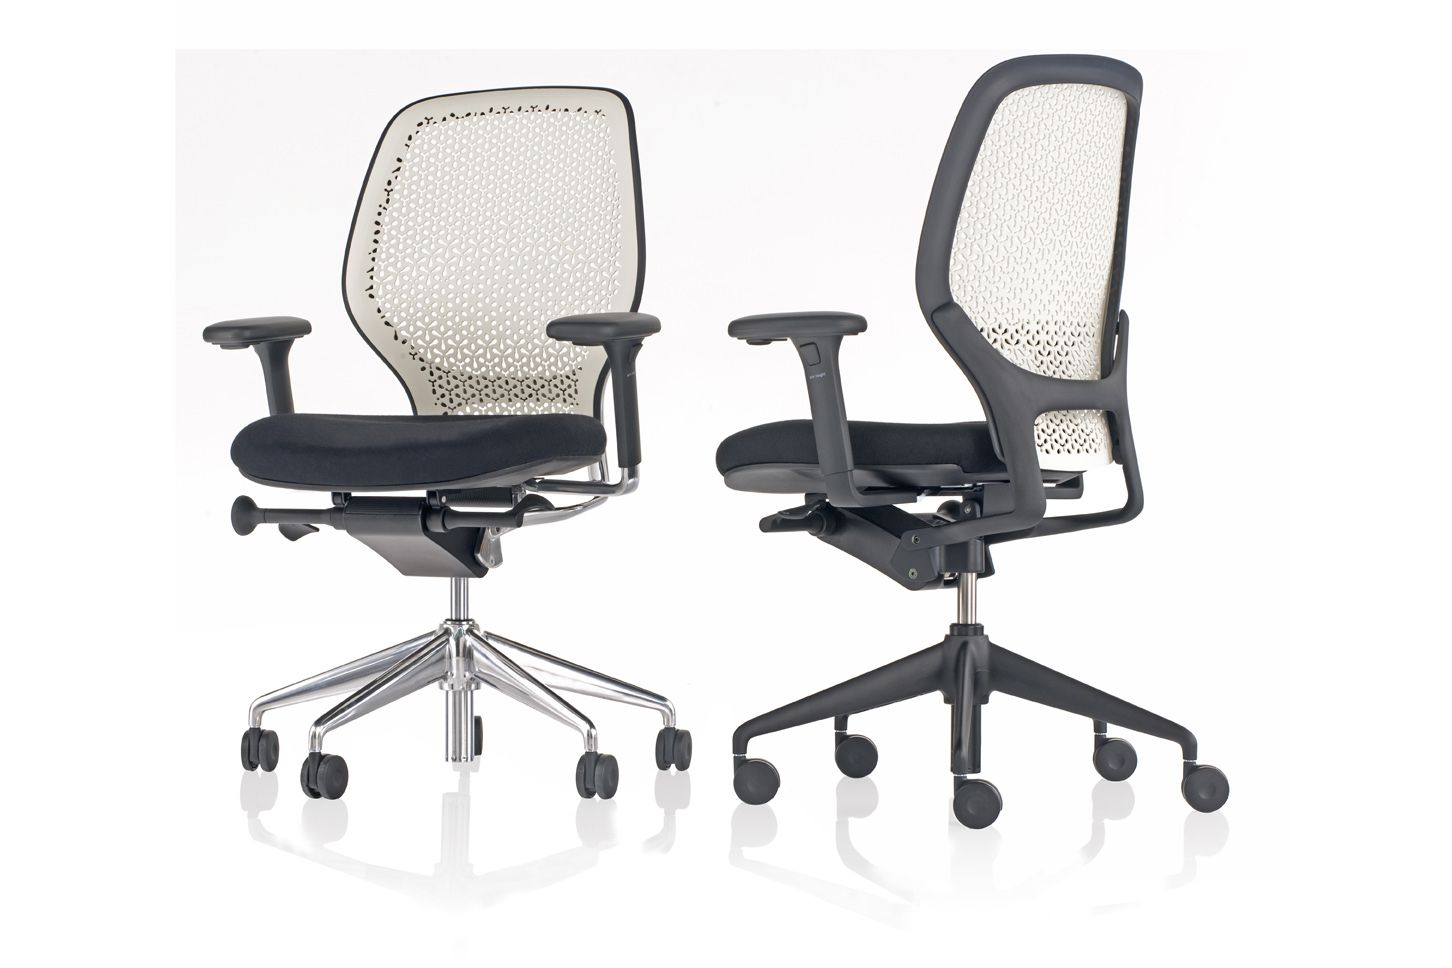 The Ara By Orangebox Is The First Office Task Chair Manufactured